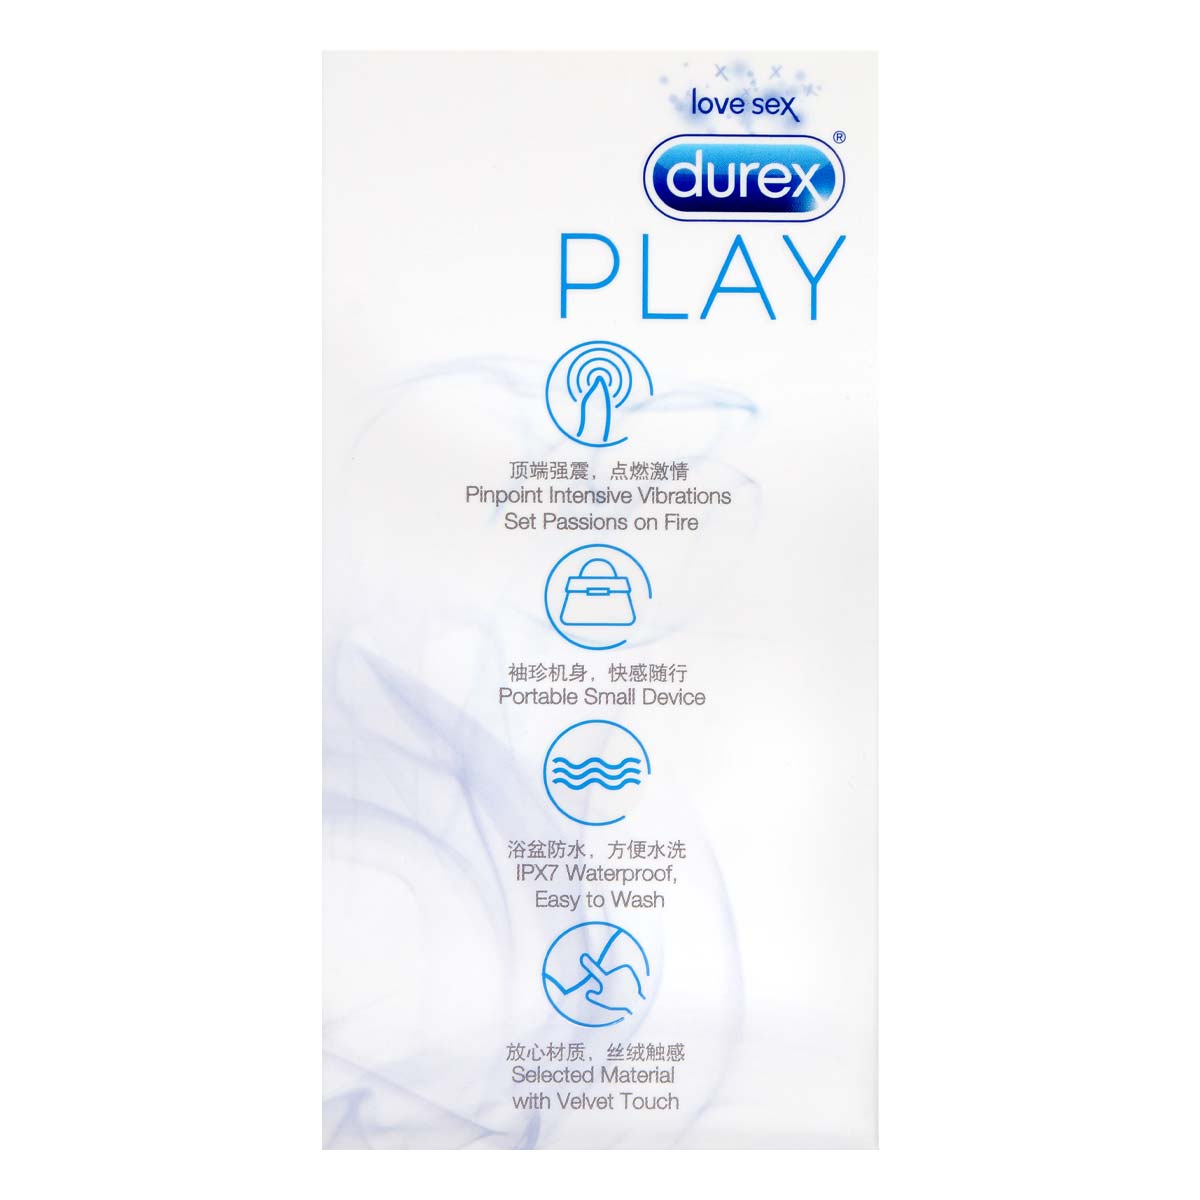 Durex Play S-Vibe single speed stroker